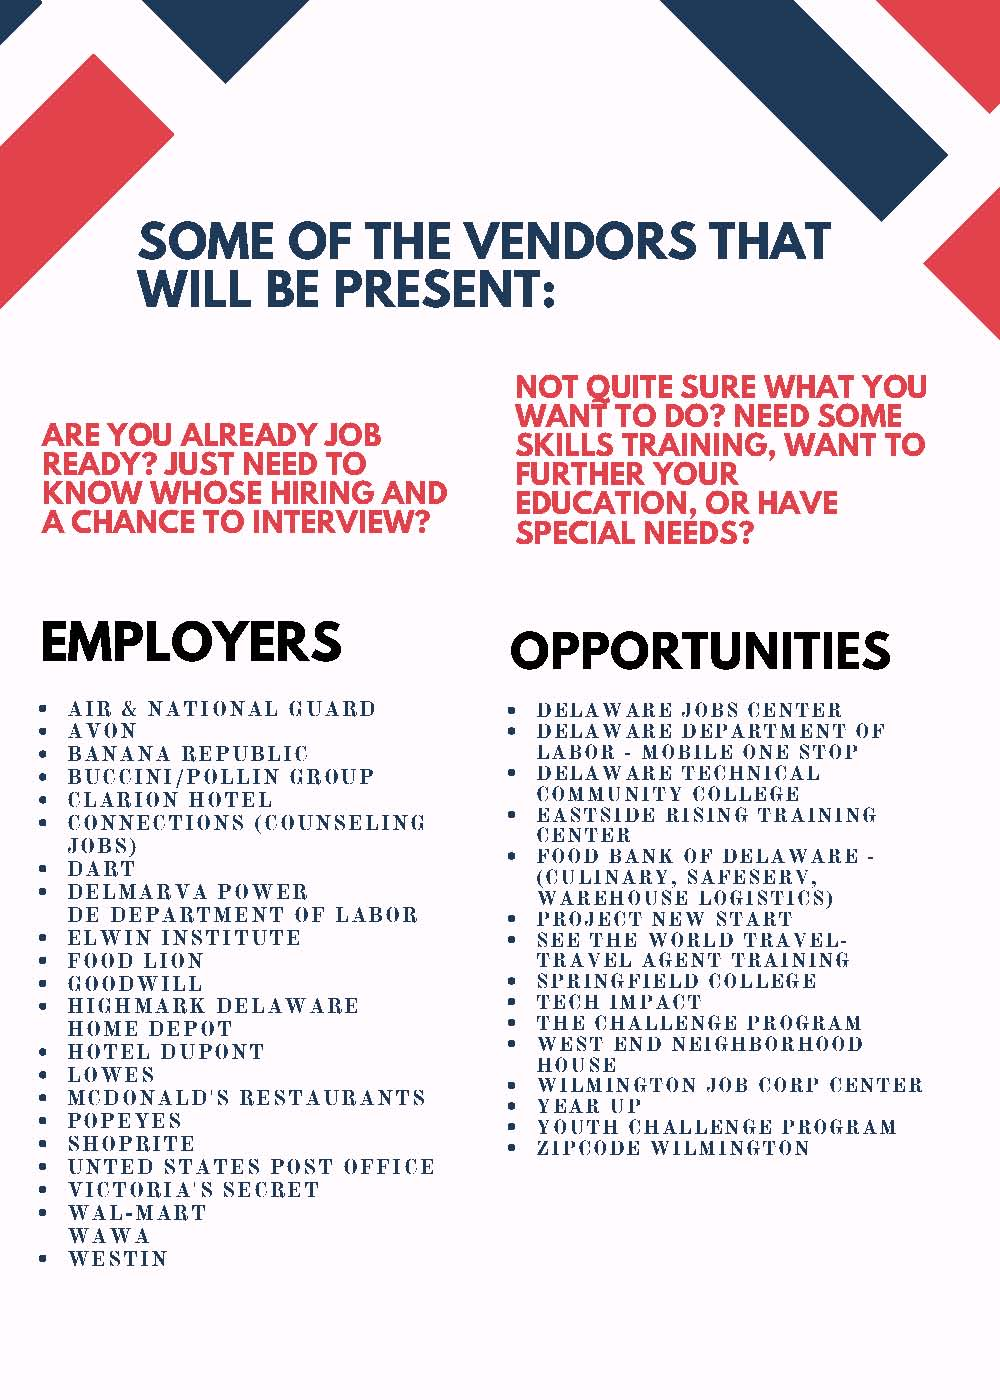 help wanted: wilmington job and opportunity fair next week